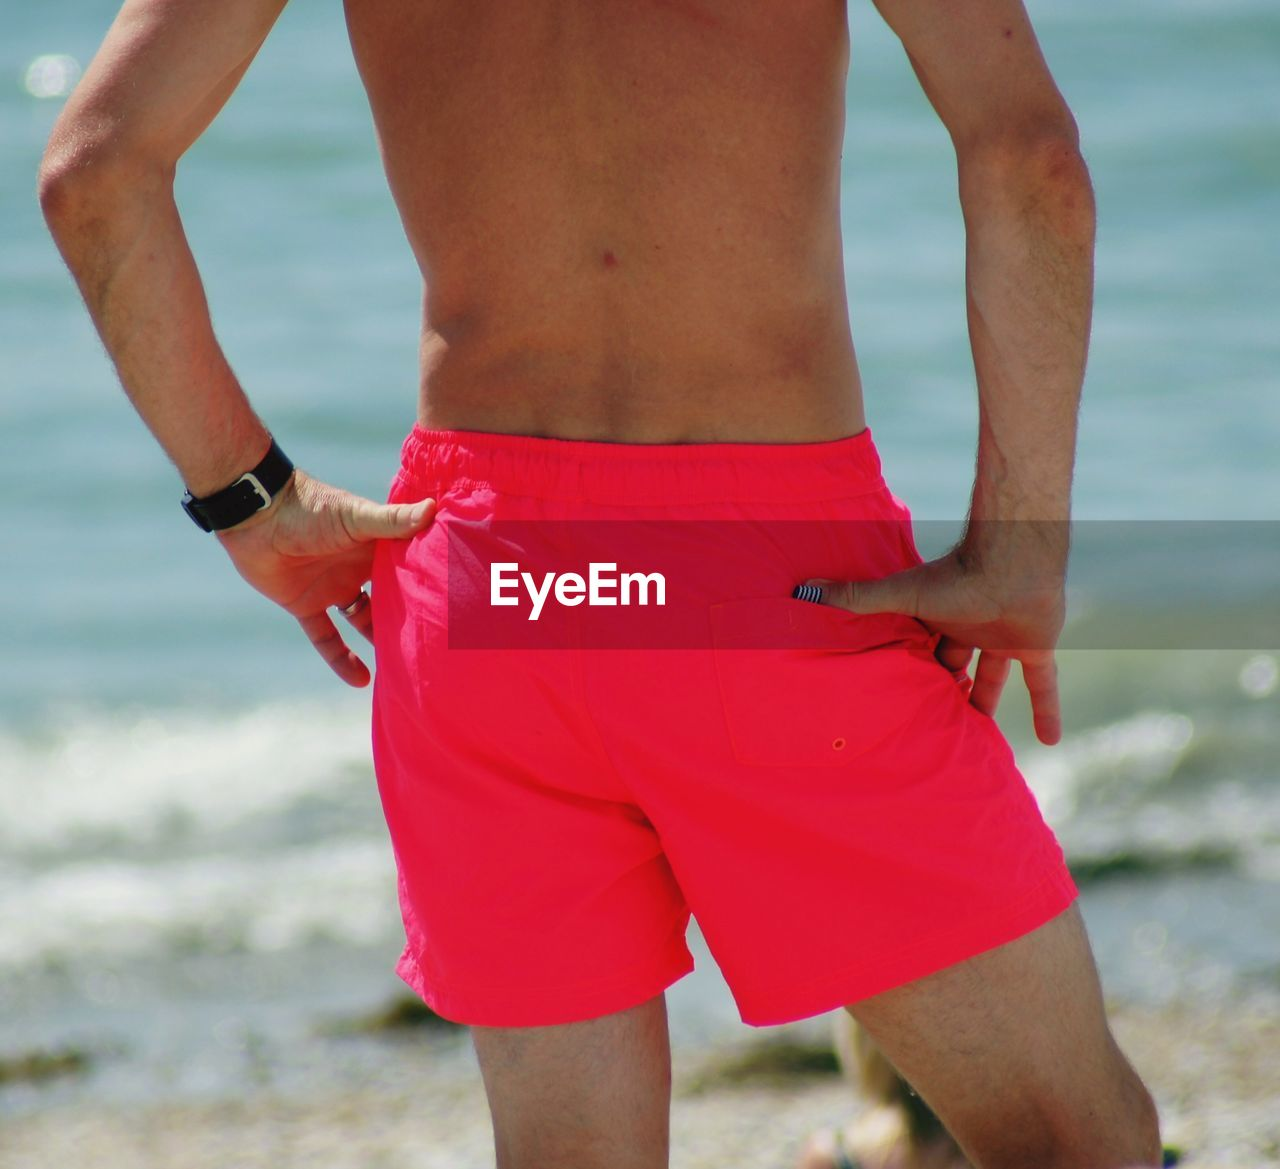 water, real people, beach, leisure activity, sea, one person, lifestyles, human body part, land, midsection, day, standing, nature, adult, rear view, clothing, focus on foreground, body part, outdoors, hand, shorts, couple - relationship